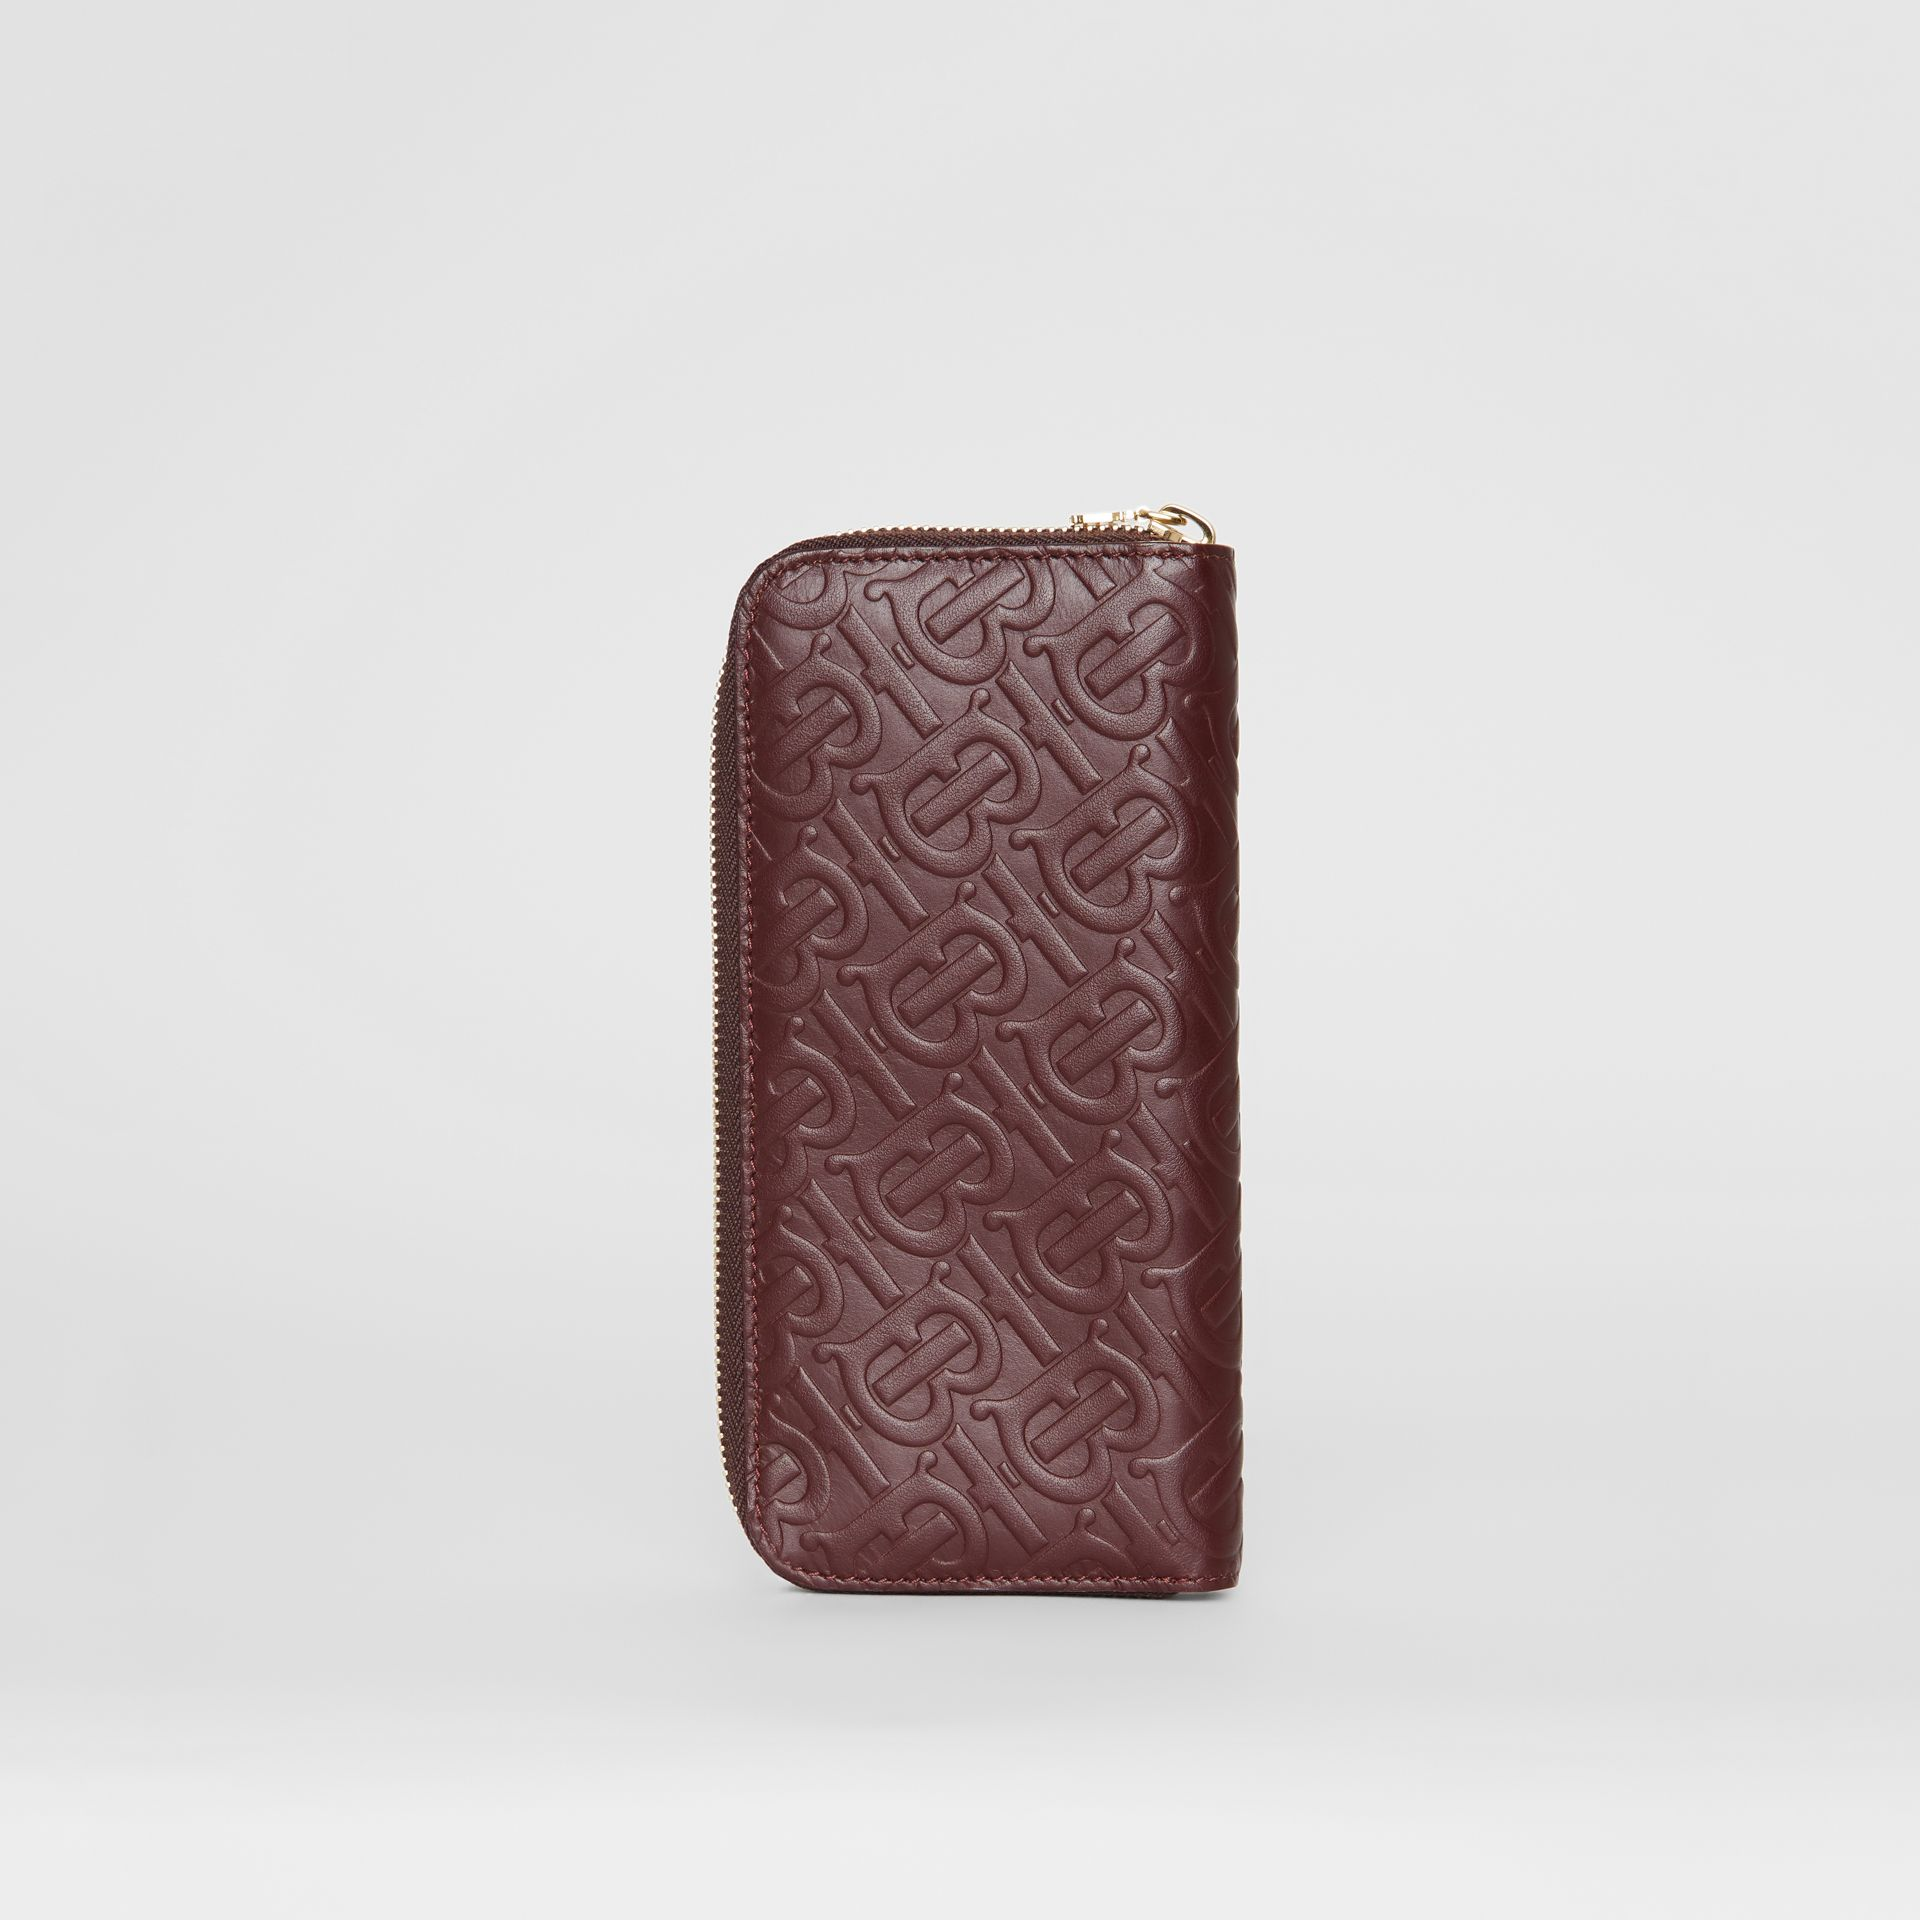 Monogram Leather Ziparound Wallet in Oxblood - Women | Burberry - gallery image 4